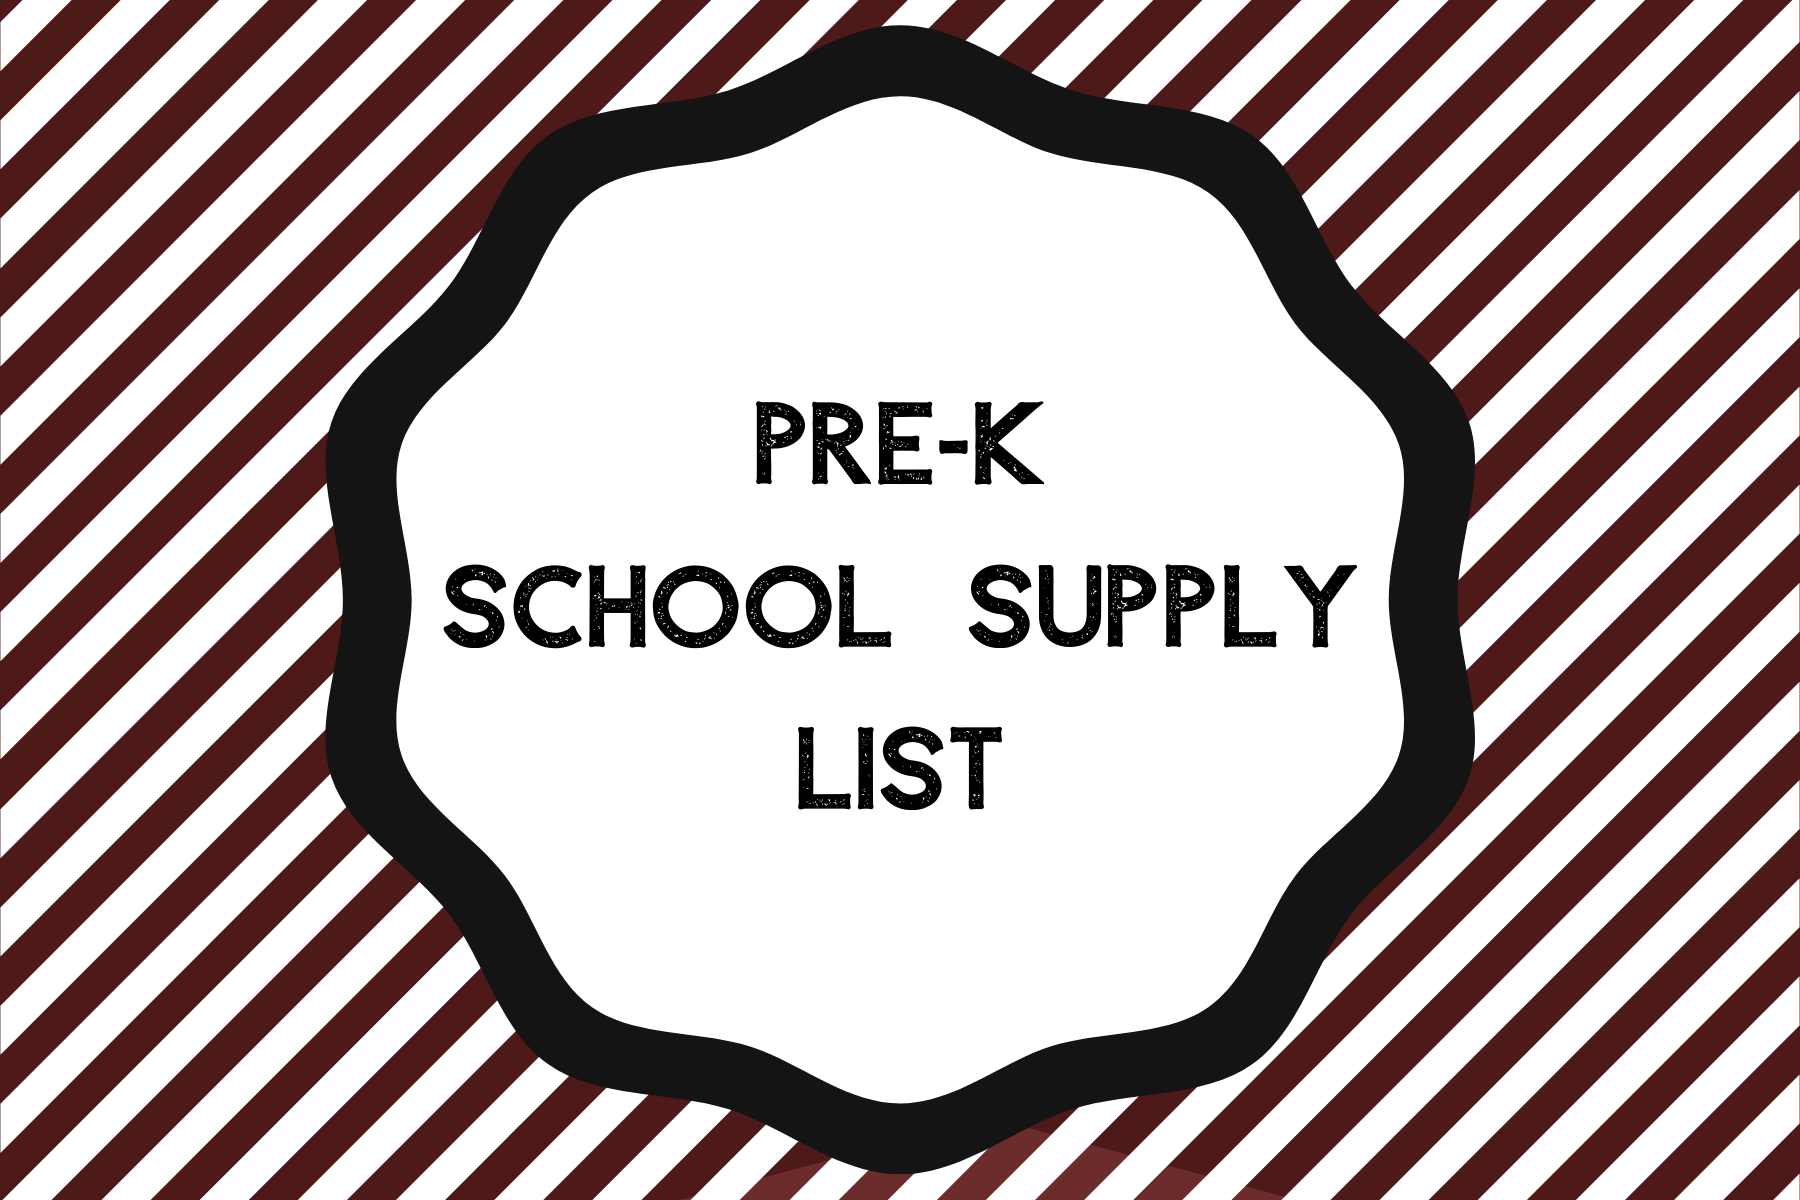 Pre-K School Supply List